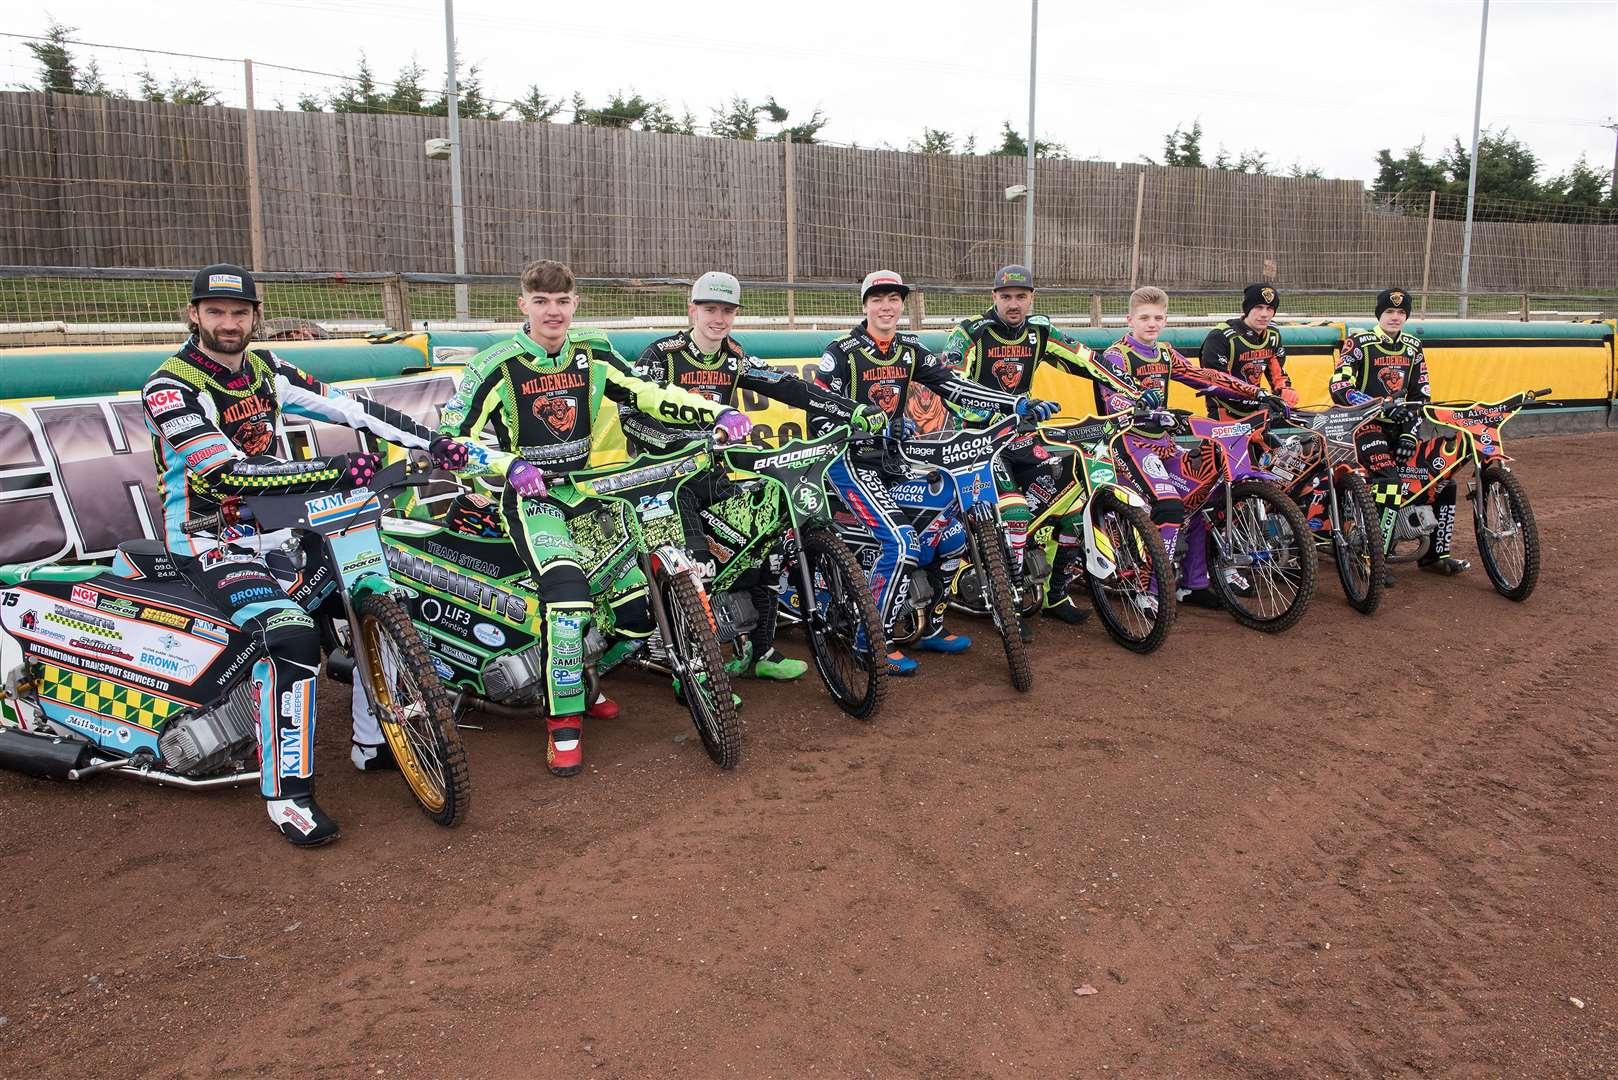 Mildenhall Fen Tigers Press and Practice Day Fen Tigers team 2019 Danny Ayres, Sam Bebee, Charlie Brooks, Jason Edwards, Dave Wallinger, Elliot Kelly, Macauley Leek and Sam Norris Picture by Mark Westley. (8750672)